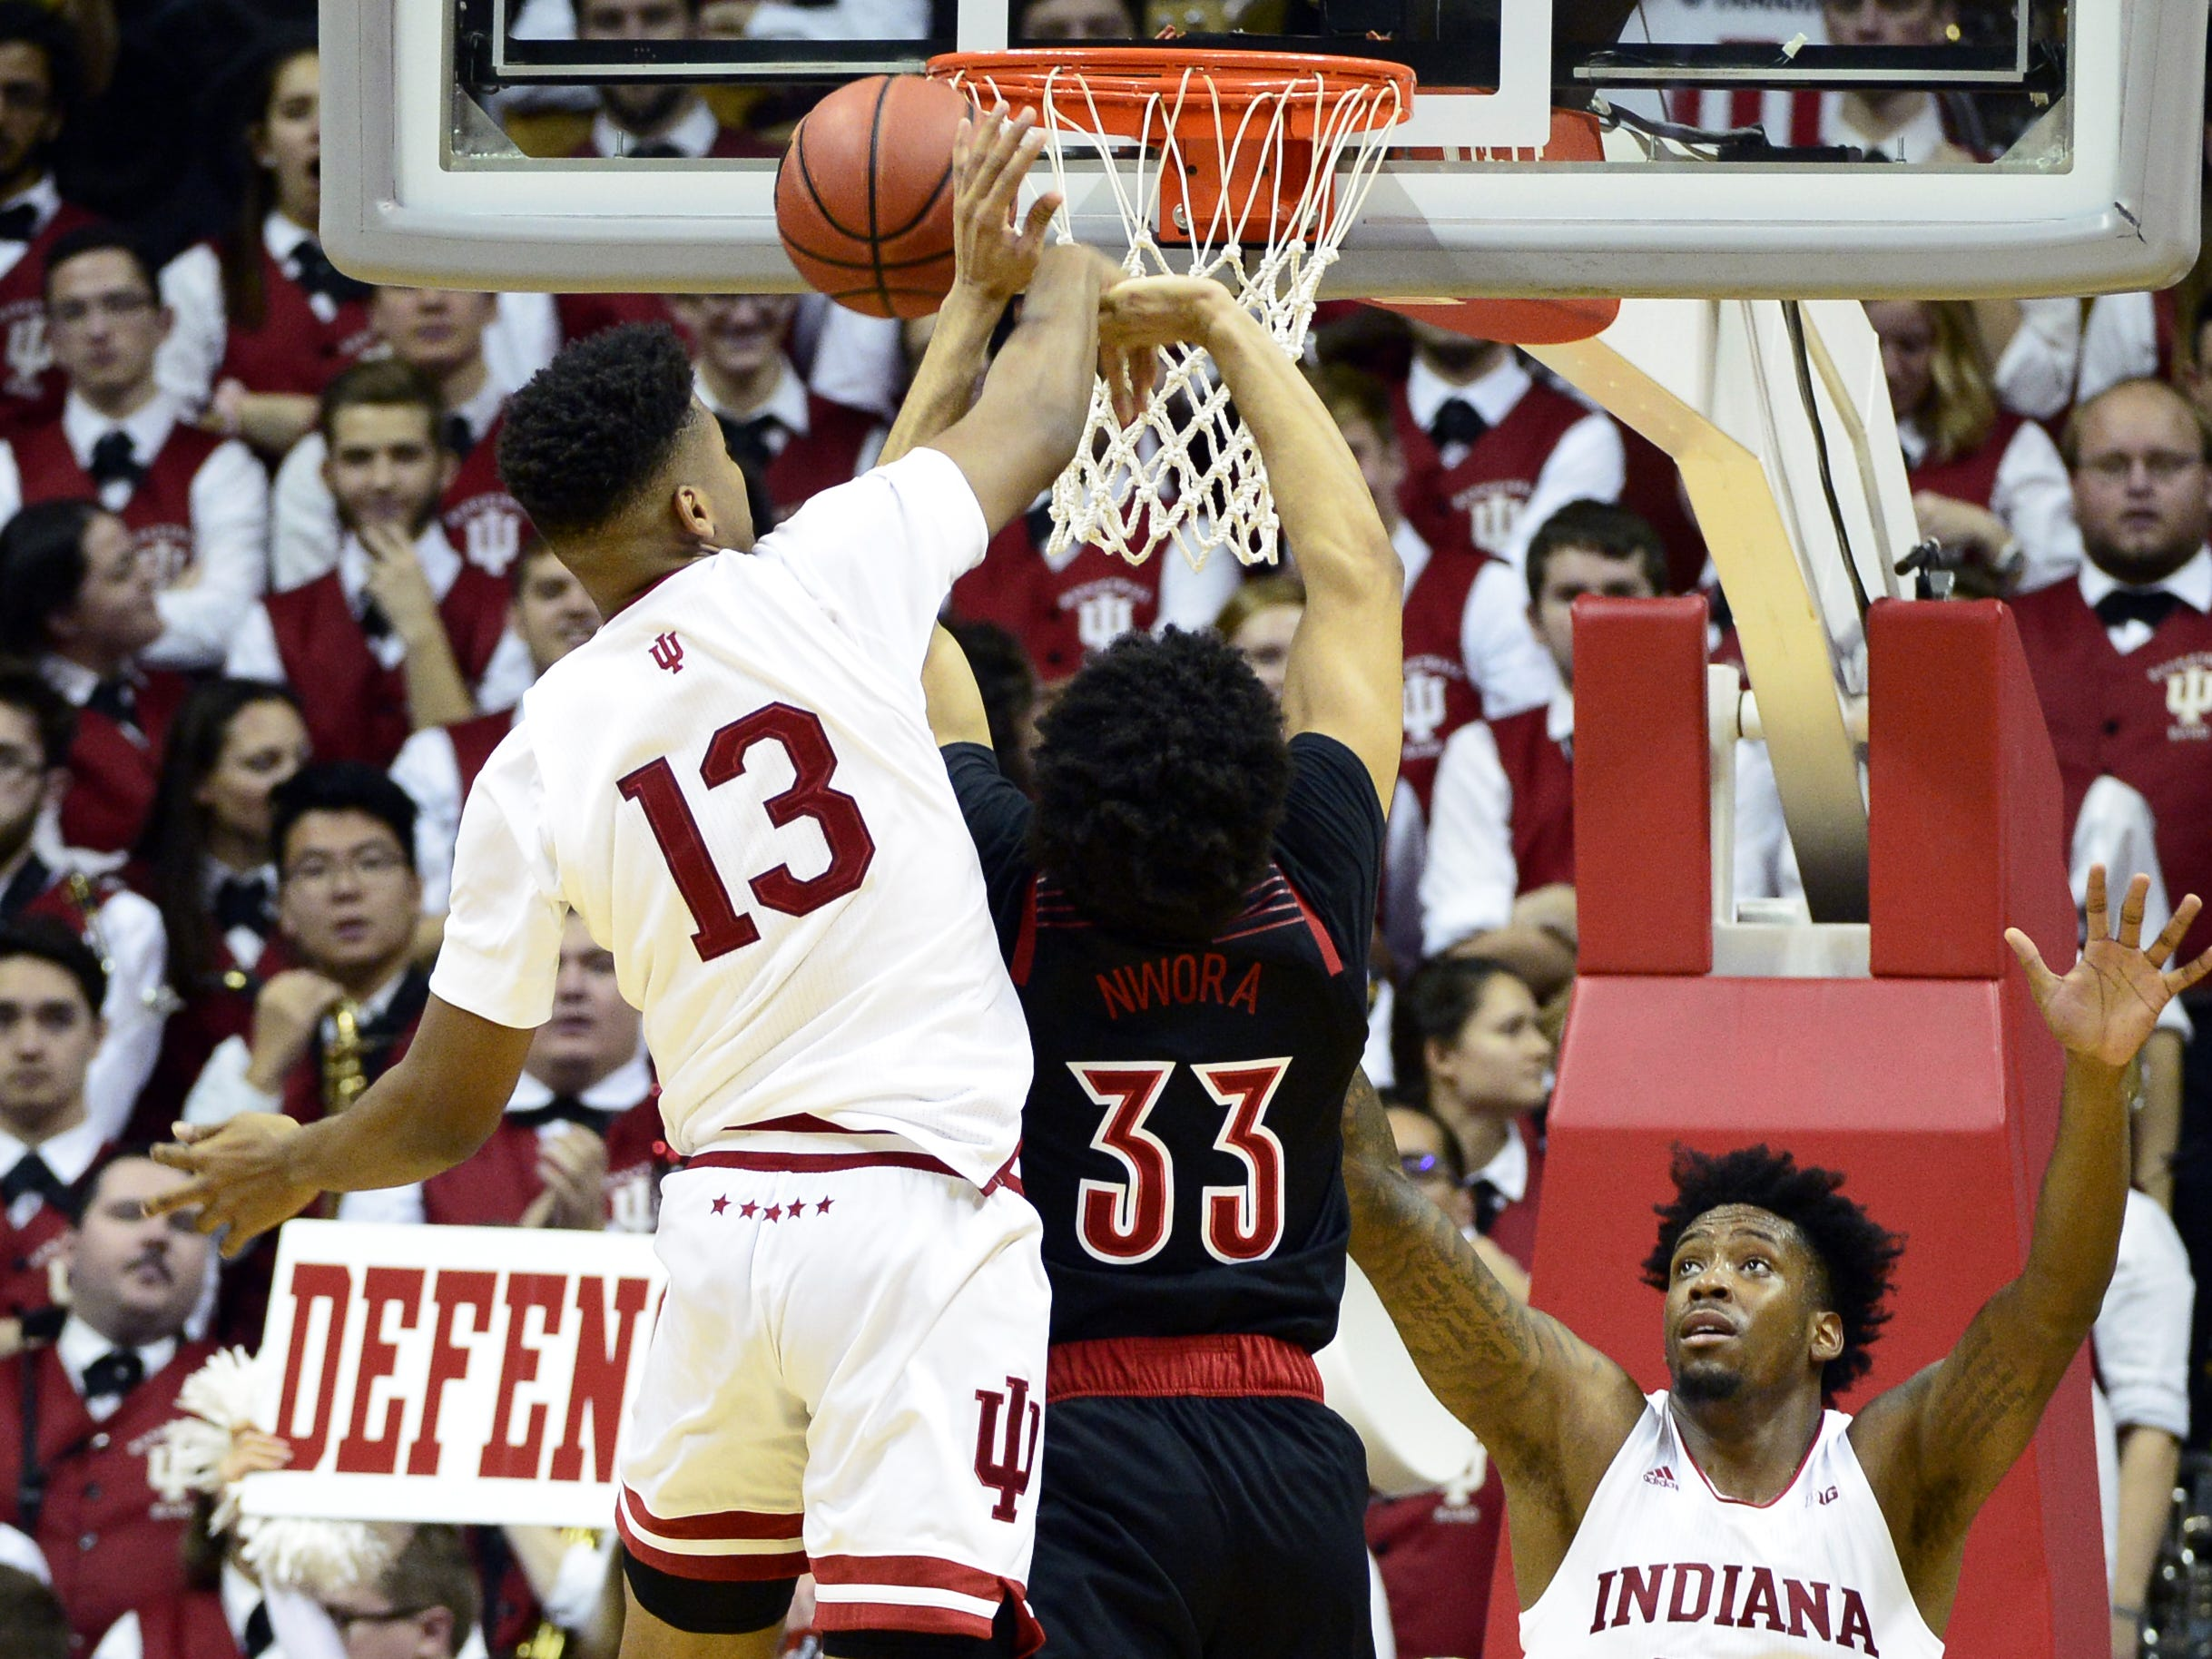 Indiana Hoosiers forward Juwan Morgan (13) blocks a shot from Louisville Cardinals forward Jordan Nwora (33) during the game against Louisville at Simon Skjodt Assembly Hall in Bloomington, Ind., on Saturday, Dec. 8, 2018.